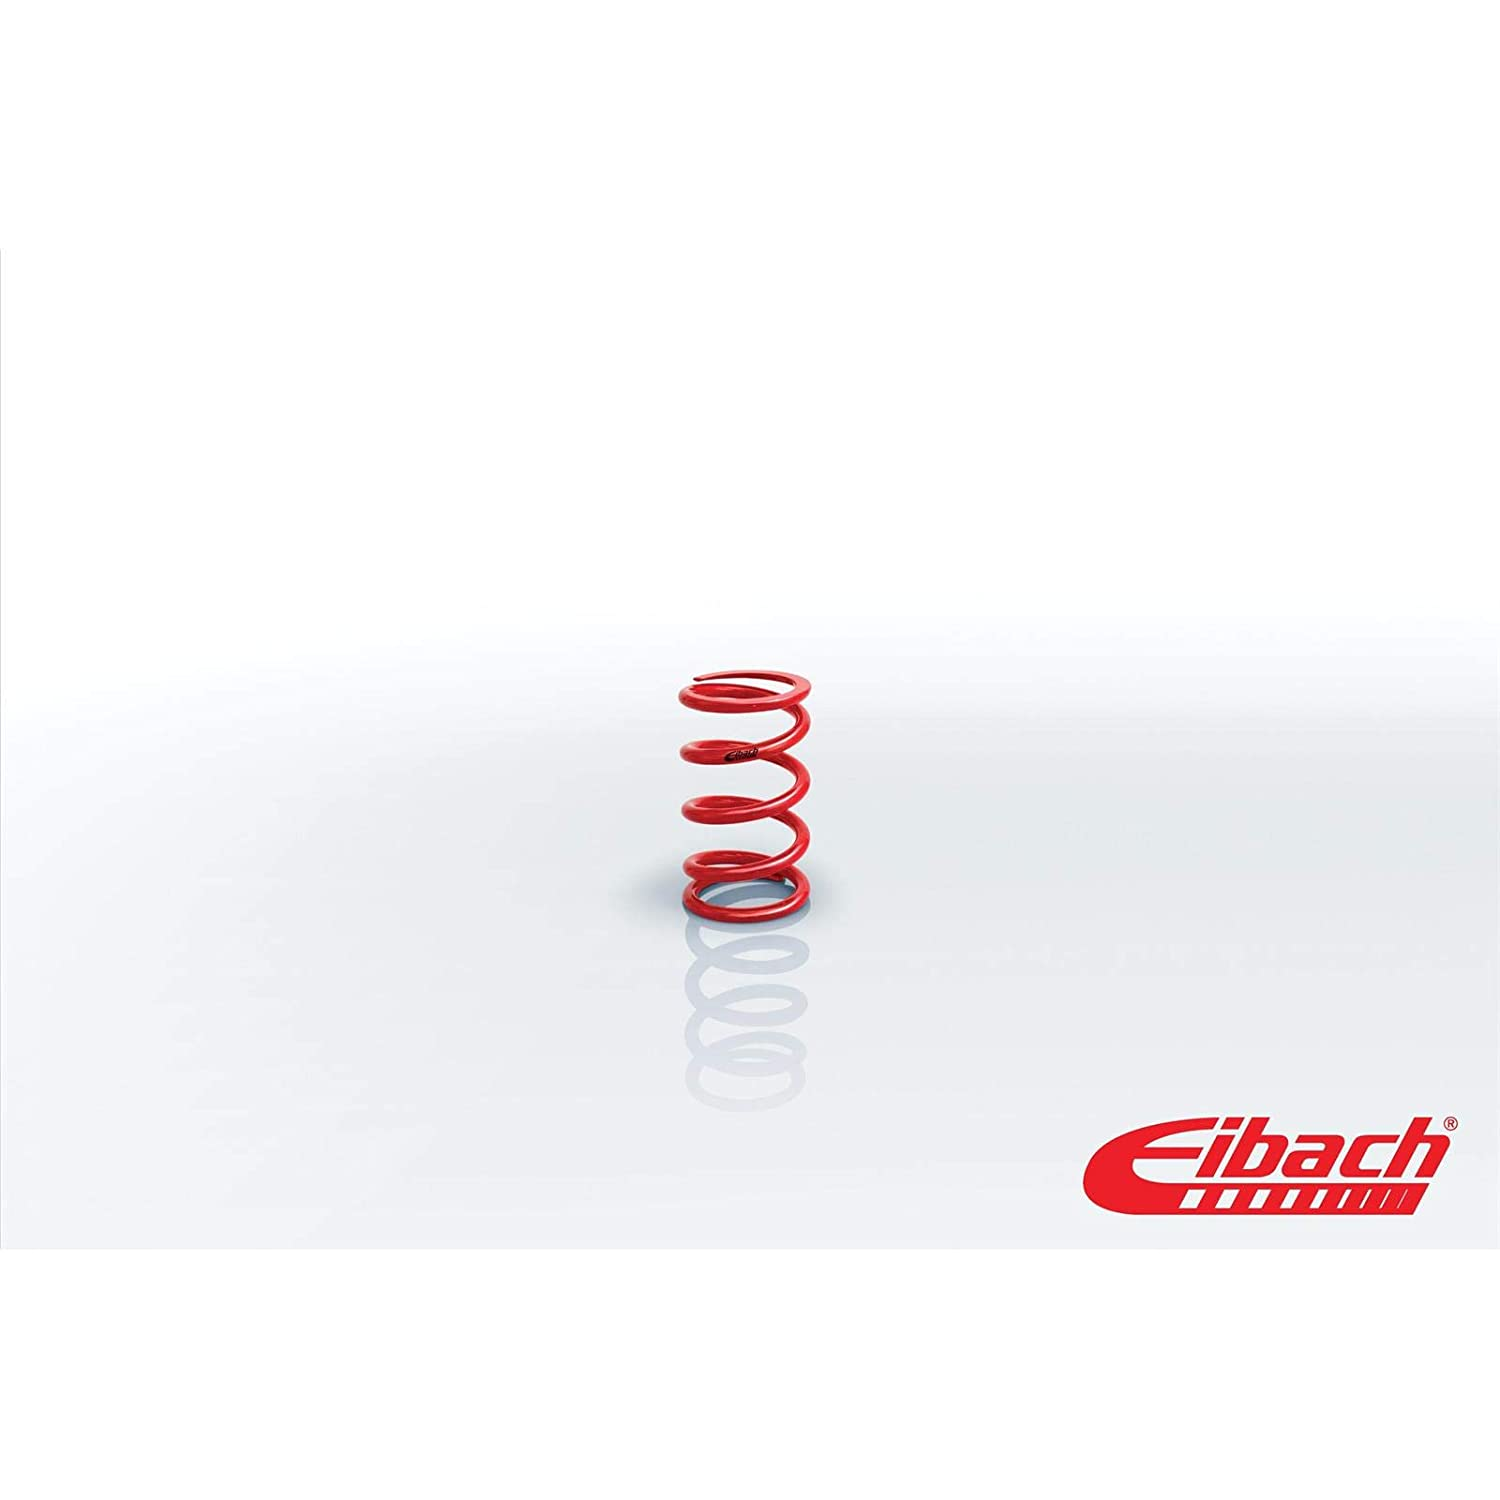 Eibach 120-60-0100 ERS 120mm Length x 60mm ID Coil-Over Spring